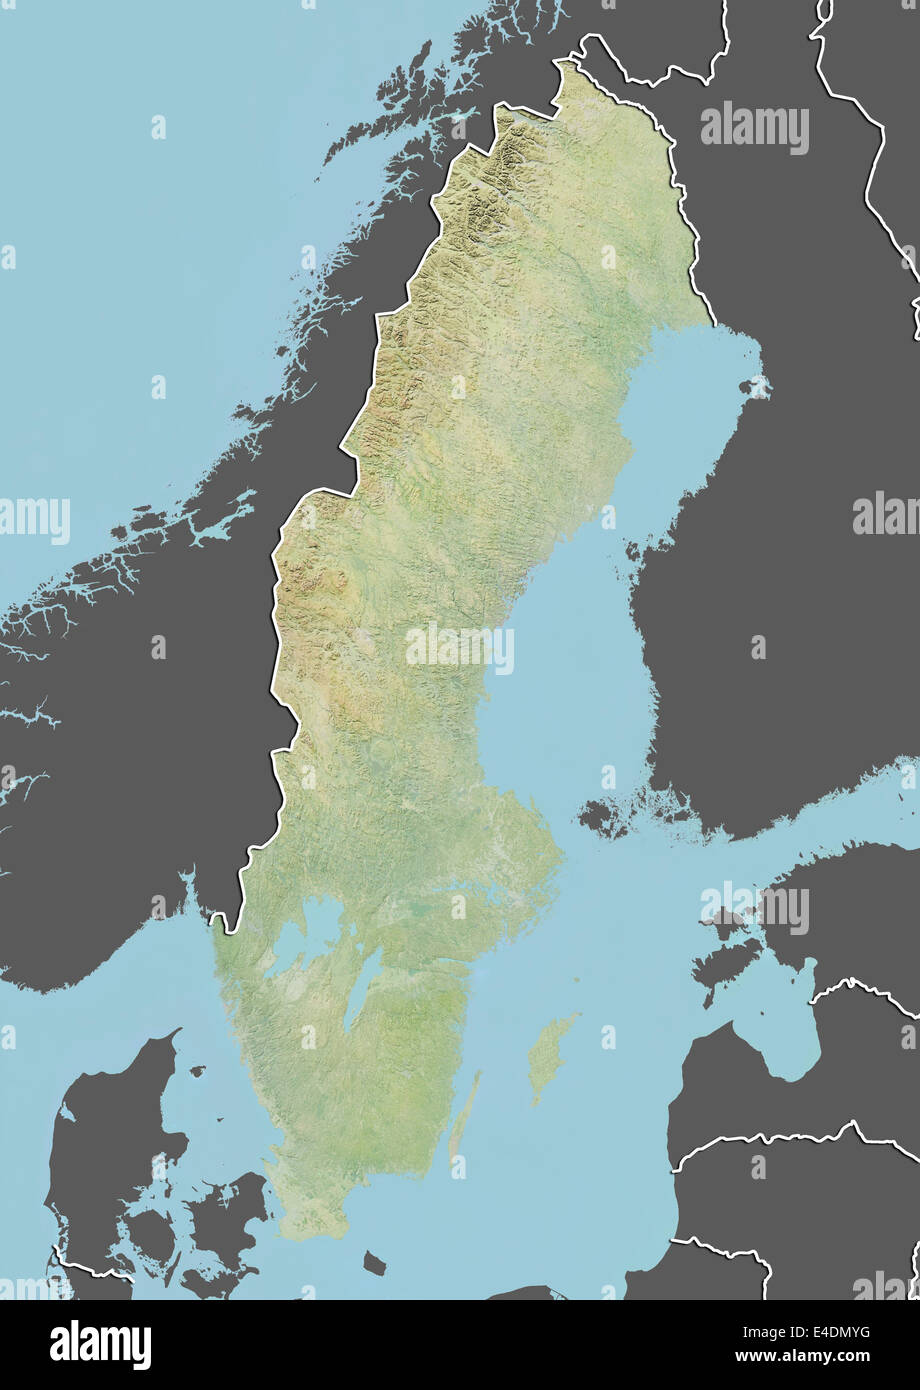 Sweden Relief Map With Border And Mask Stock Photo Royalty Free - Sweden relief map